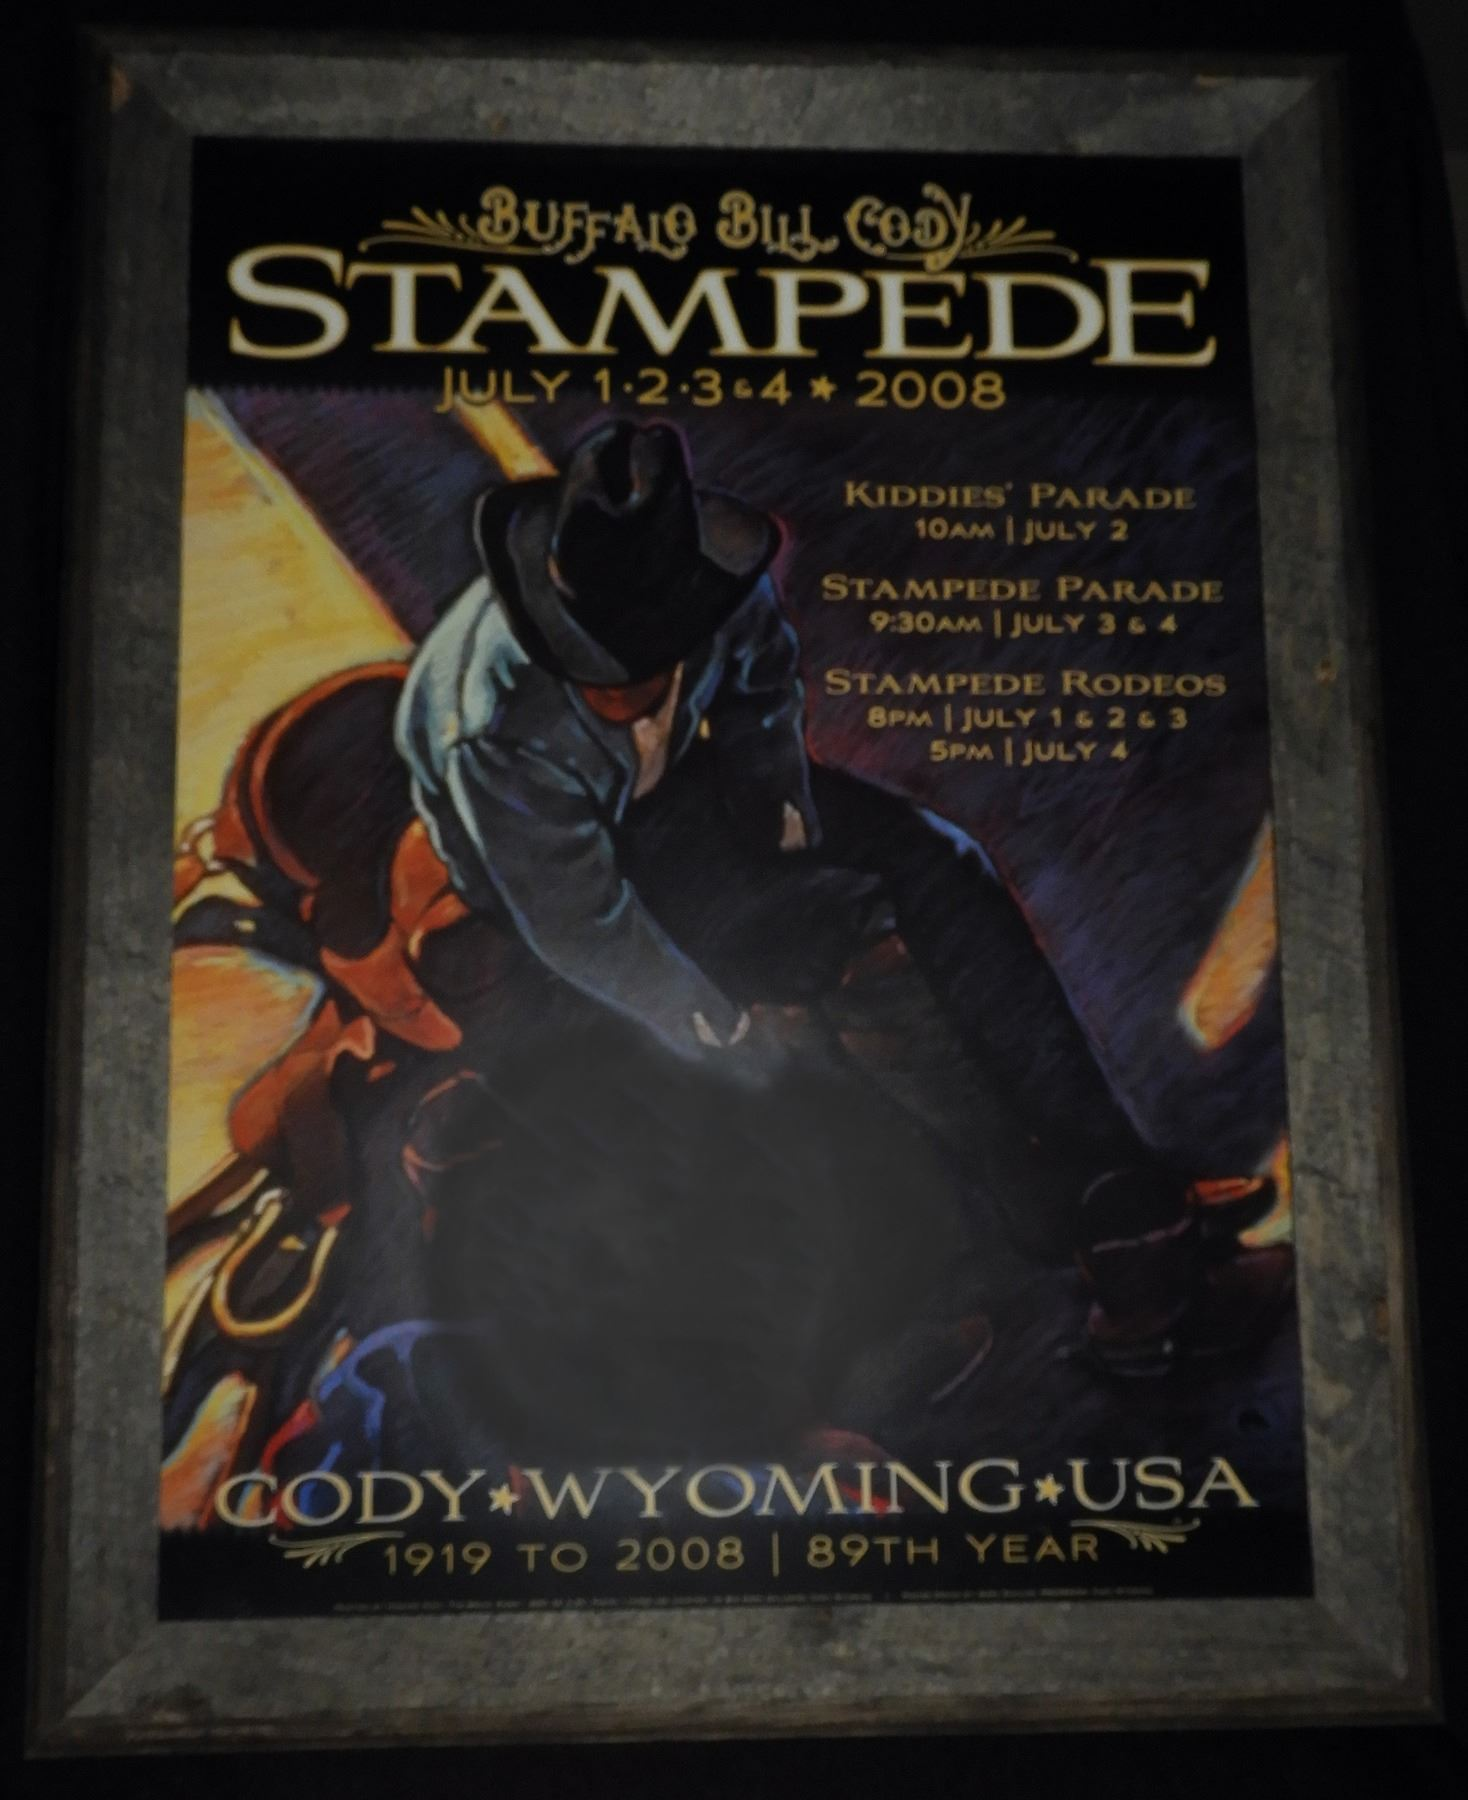 2008 Cody Night Rodeo Framed Poster